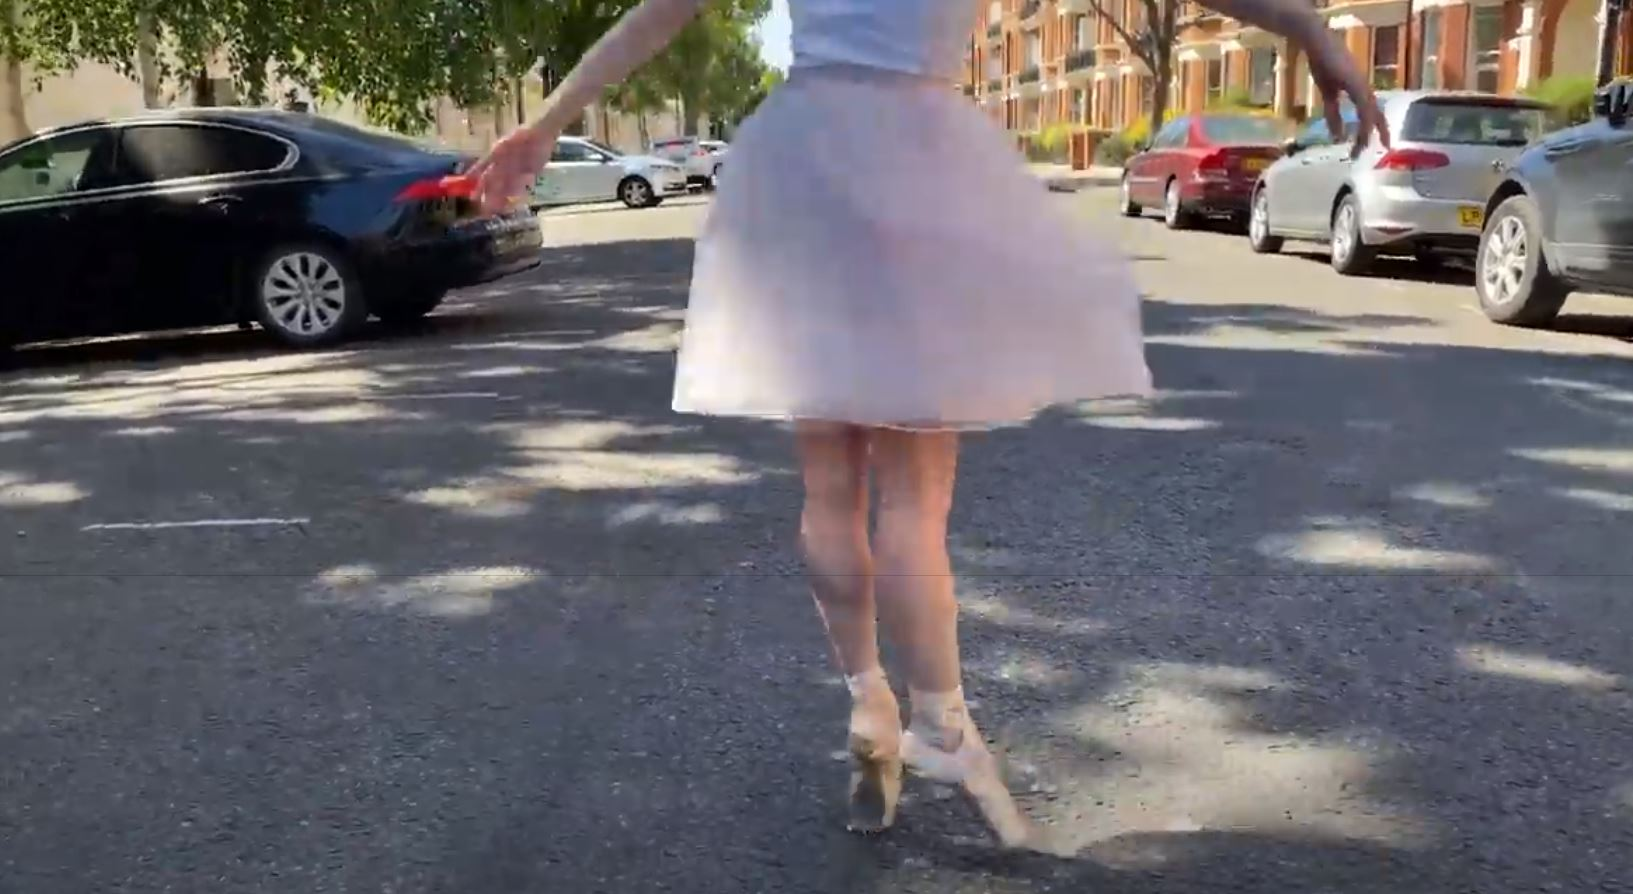 Pirouette like Jagger: Royal Ballet dances to Stones in London streets